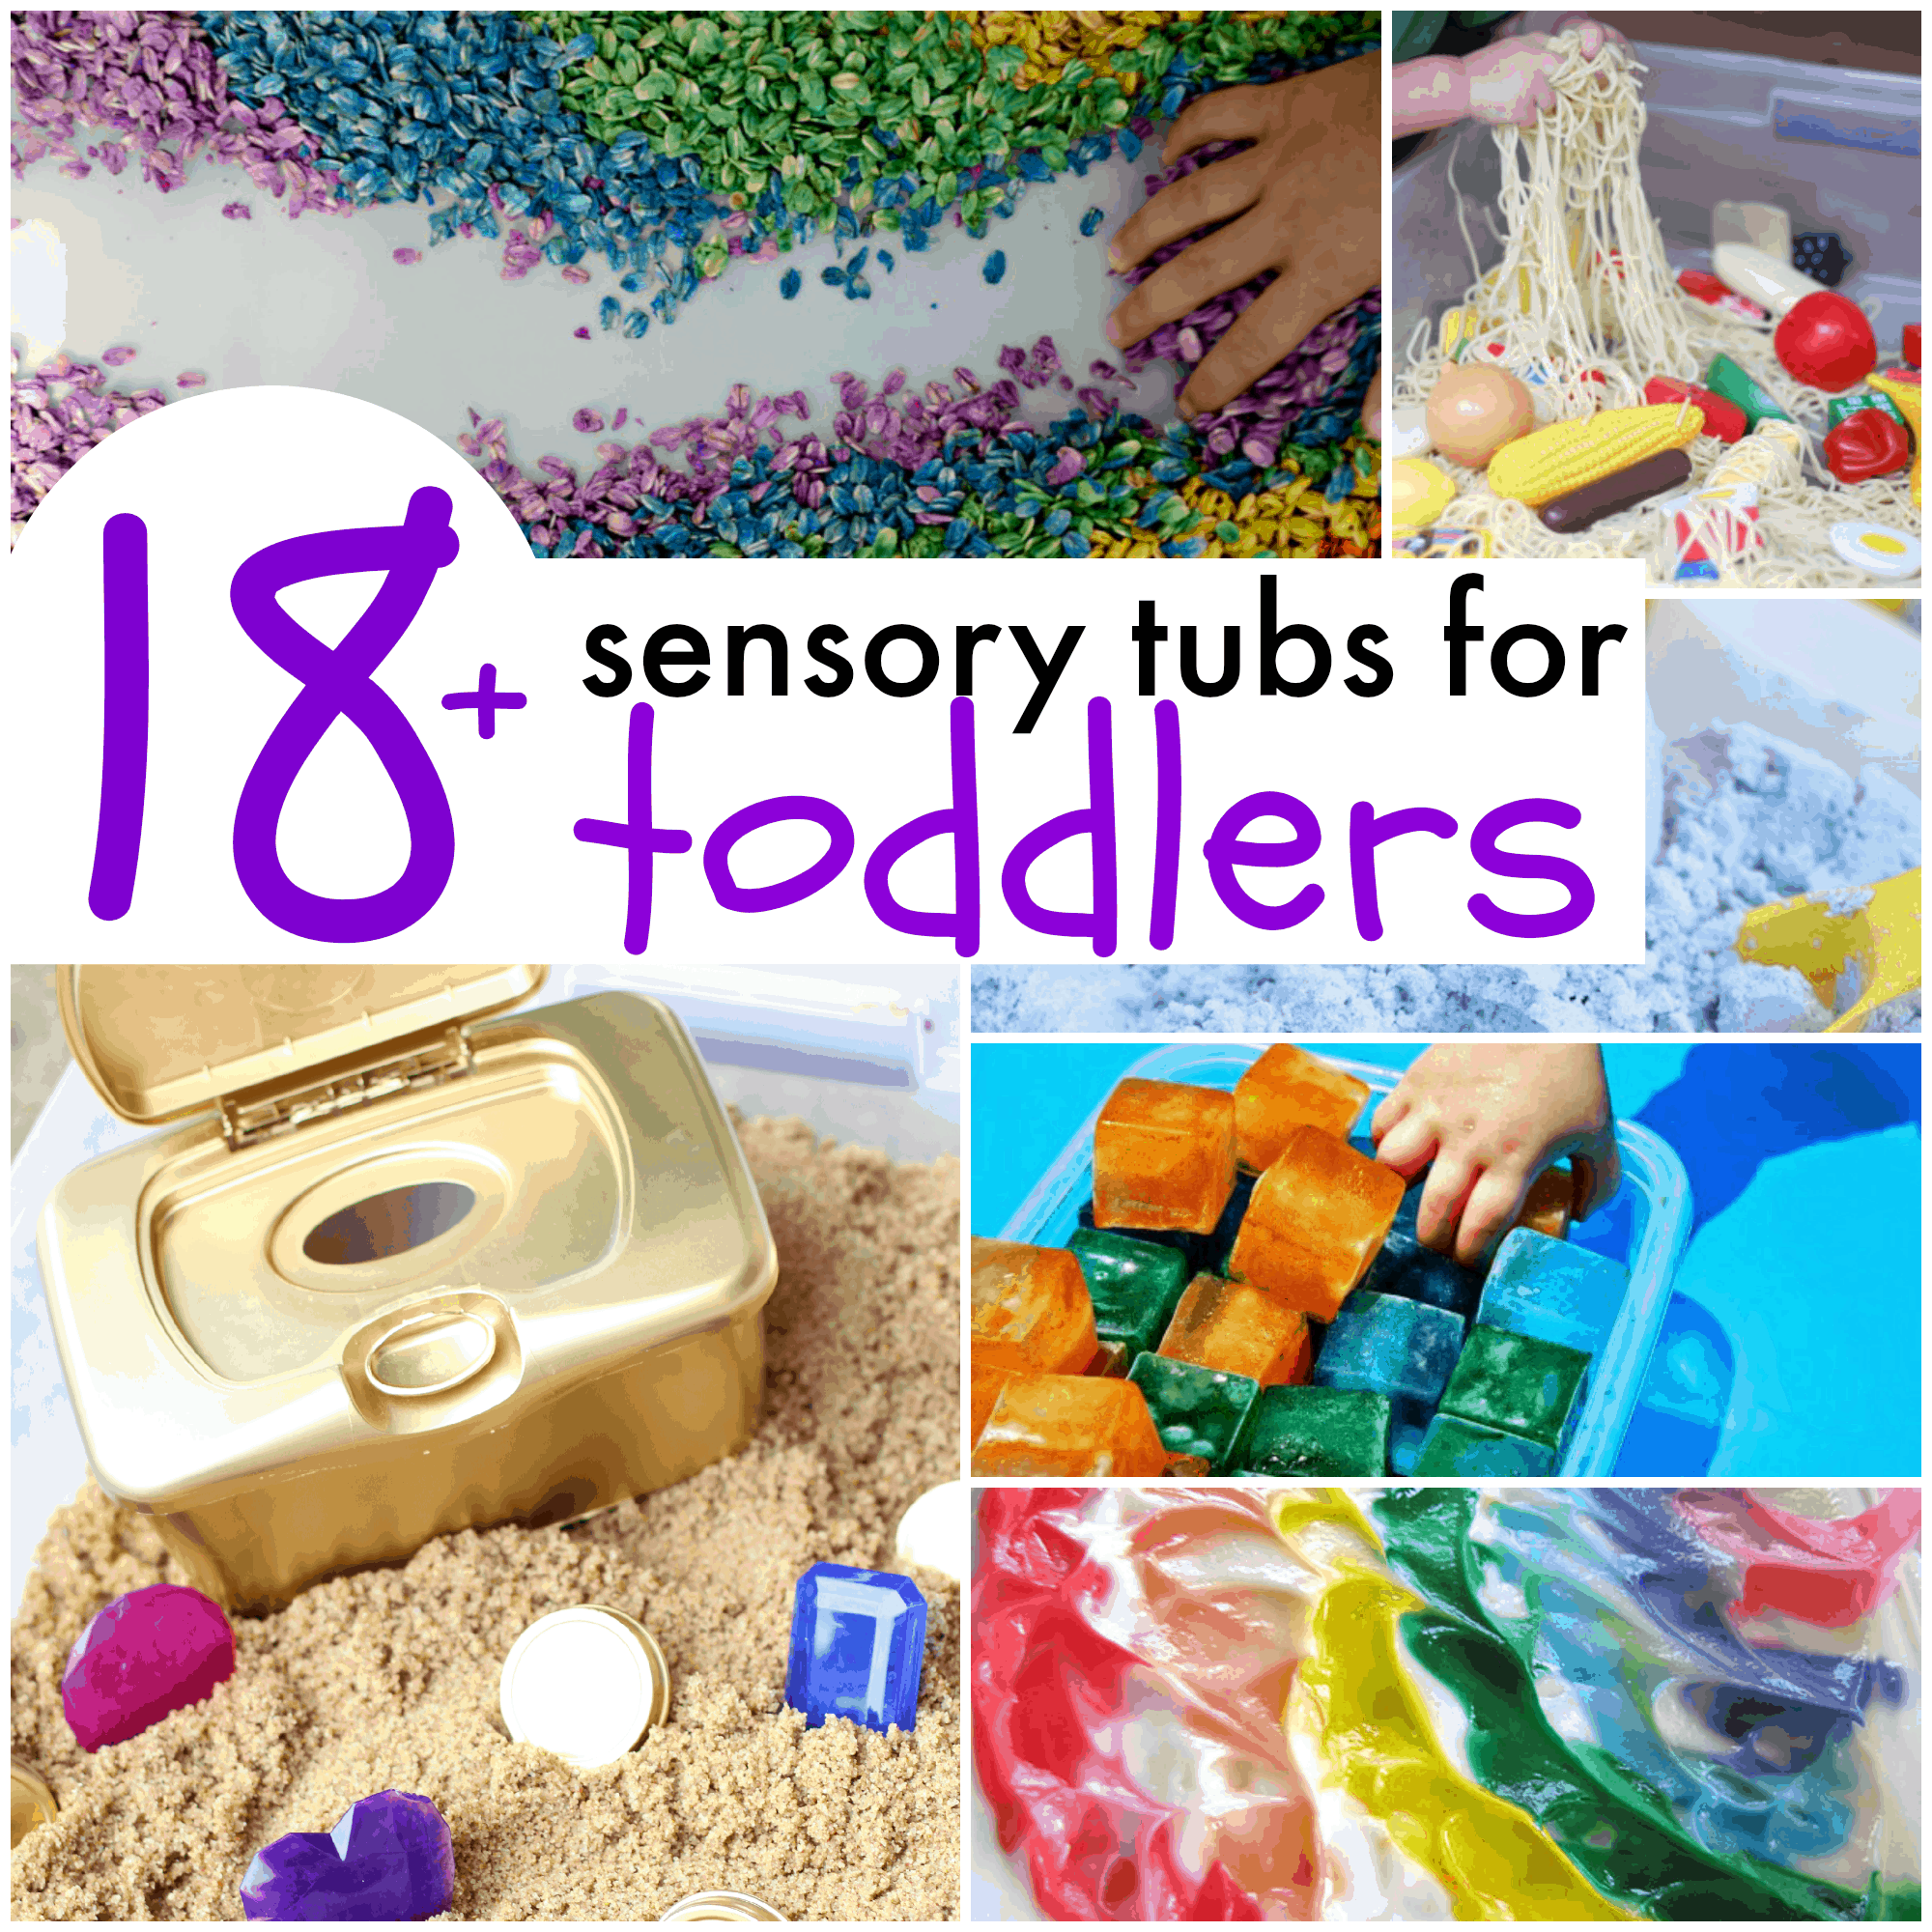 18 Sensory Tubs For Toddlers I Can Teach My Child